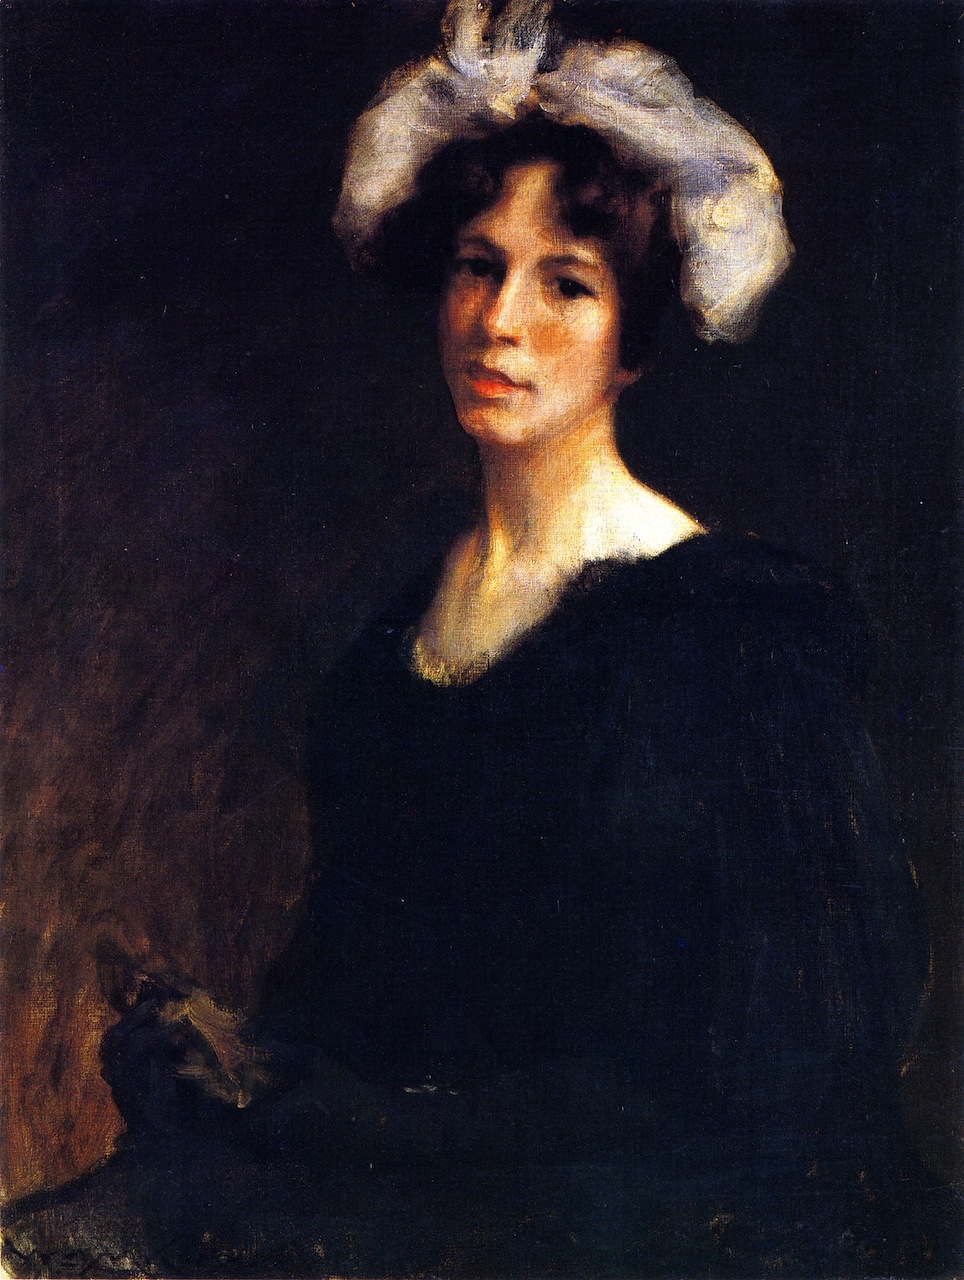 Bessie Potter by William Merritt Chase, 1895